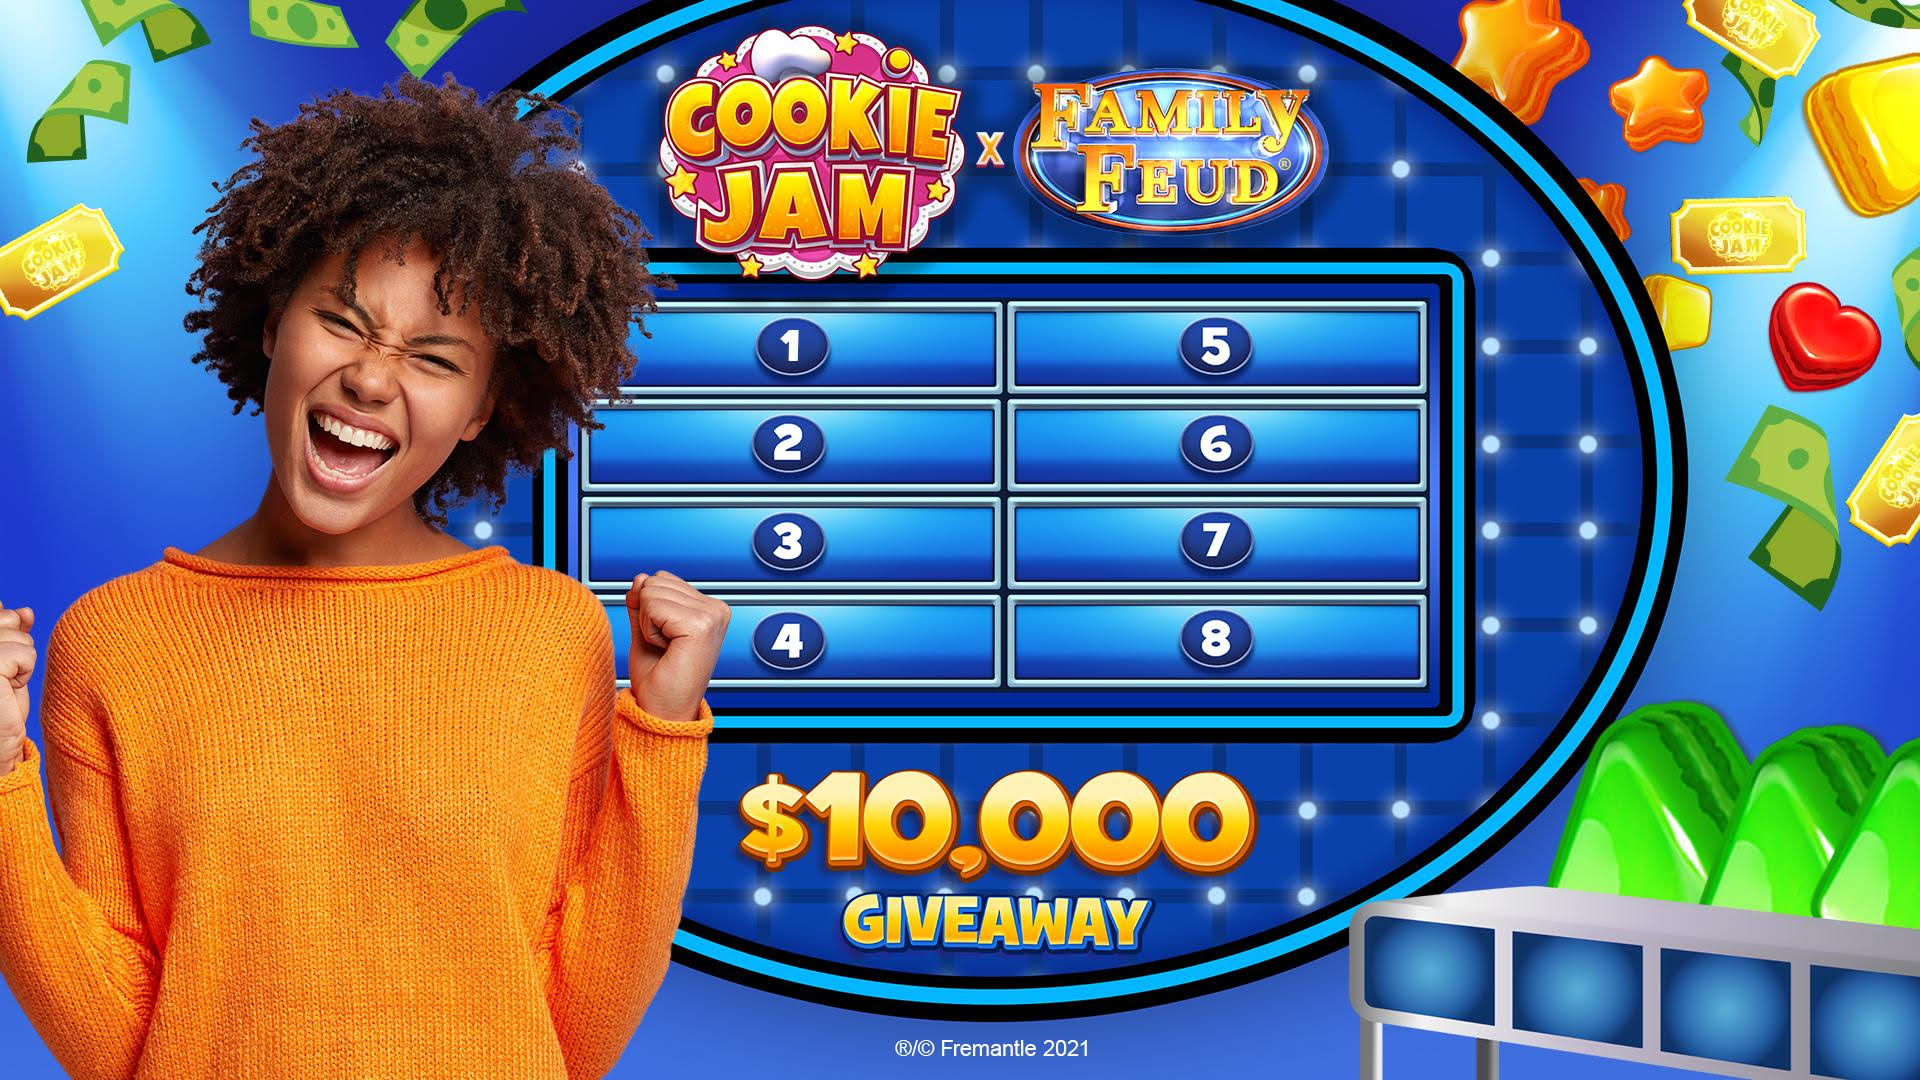 JAM & CITY & AND FREMANTLE PARTNER TO BRING FAMILY FEUD™ TO COOKIE JAM